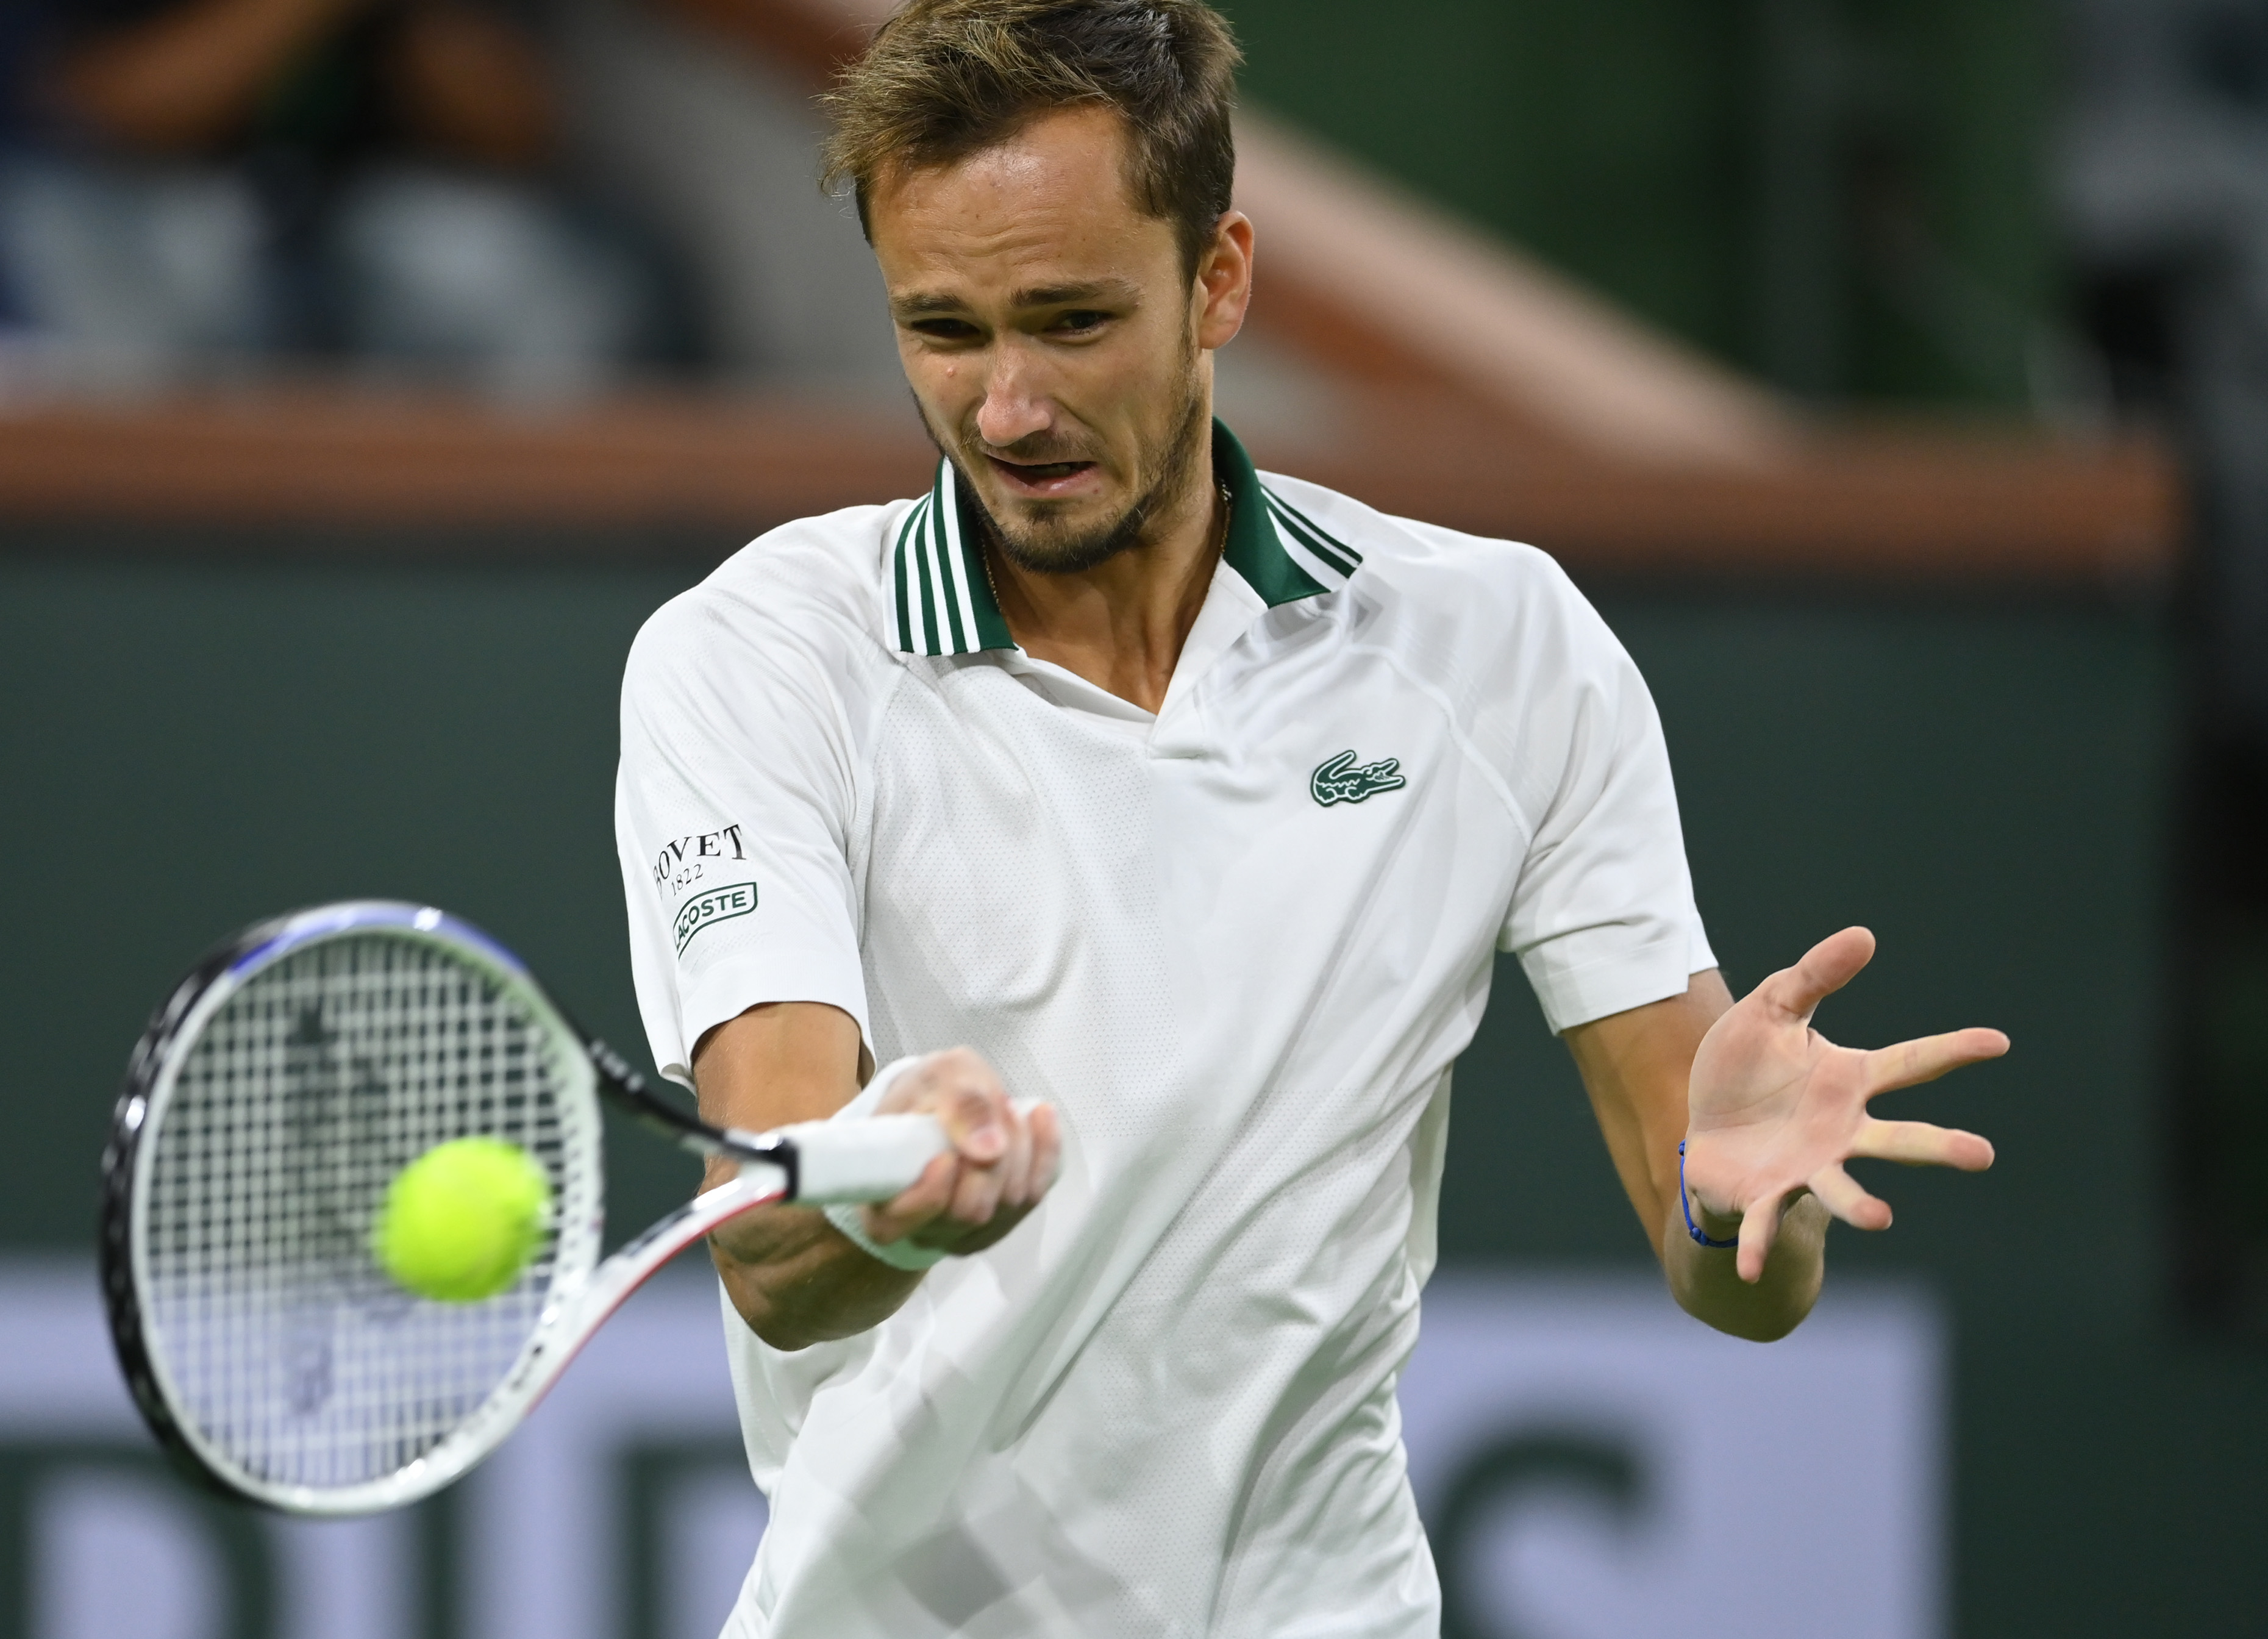 Oct 11, 2021; Indian Wells, CA, USA; Daniil Medvedev (RUS) hits a shot against Filip Krajinovic (SRB) during a third round match in the BNP Paribas Open at the Indian Wells Tennis Garden. Mandatory Credit: Jayne Kamin-Oncea-USA TODAY Sports